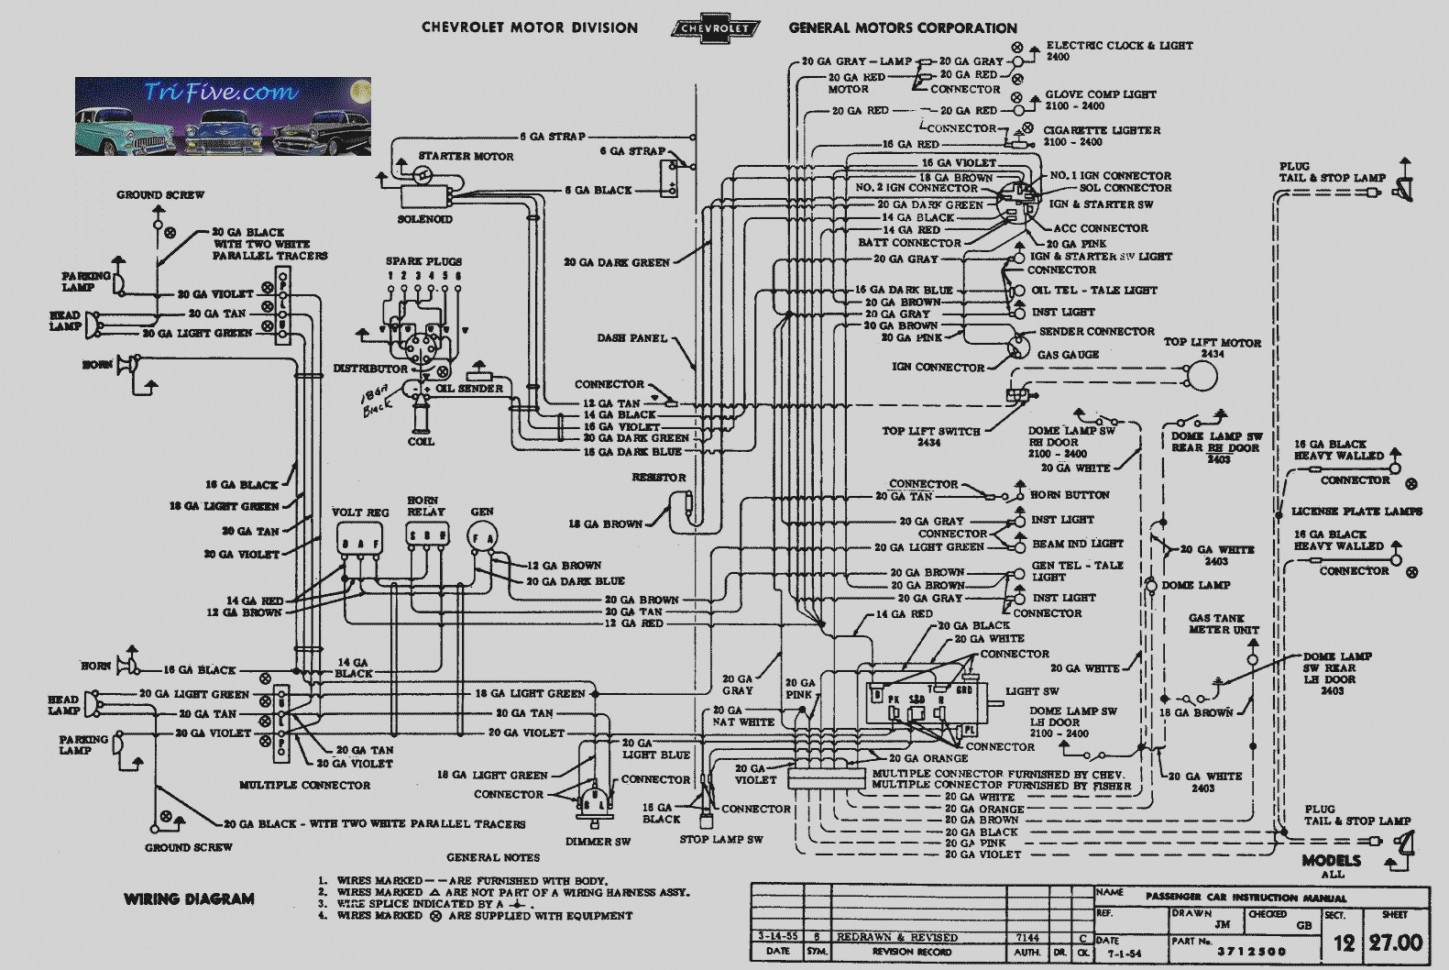 combination switch receptacle wiring diagram for light and switch 1955 chevy turn signal wiring diagram | free wiring diagram